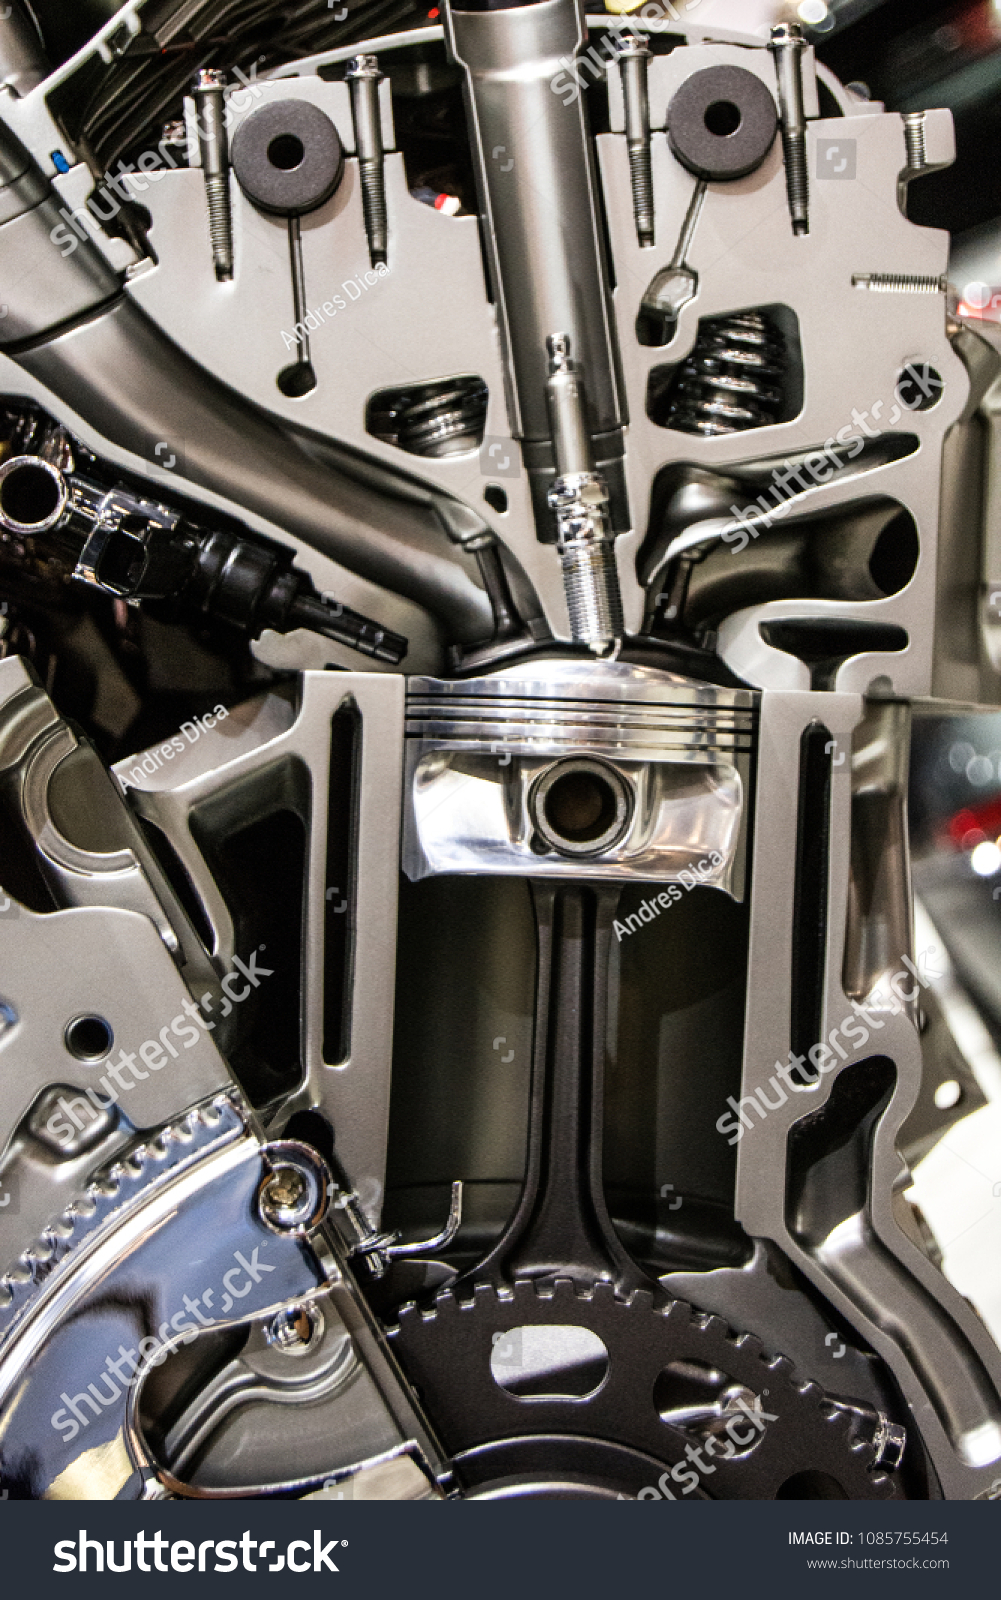 Car Engine Components Stock Photo (Edit Now) 1085755454 - Shutterstock